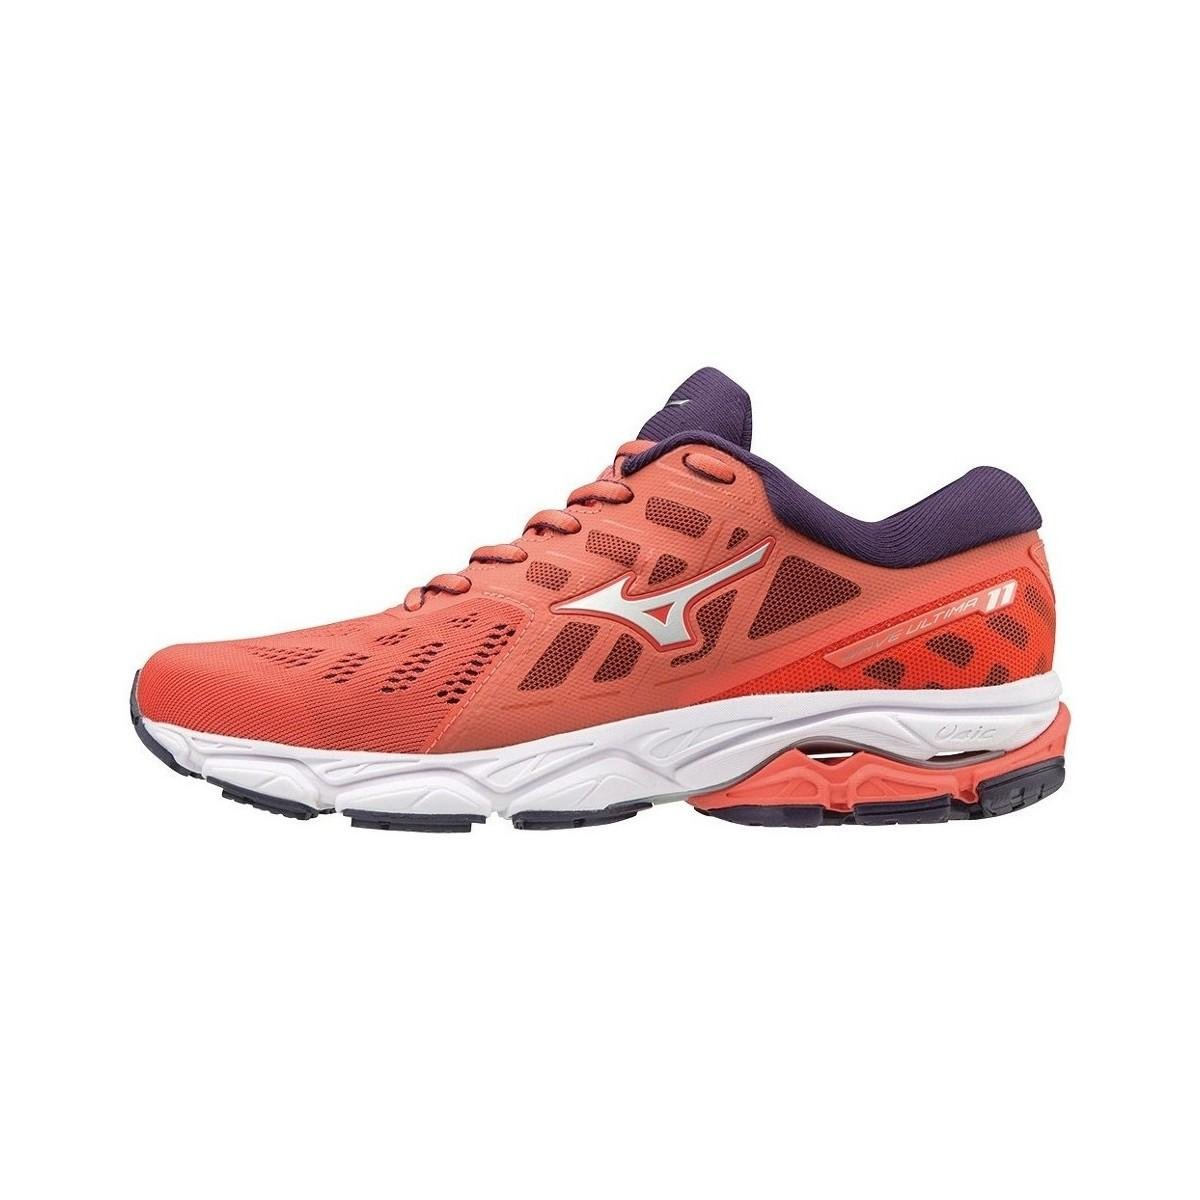 08ff20551ff7 Mizuno Wave Ultima 11 Women's Shoes (trainers) In Red in Red - Lyst